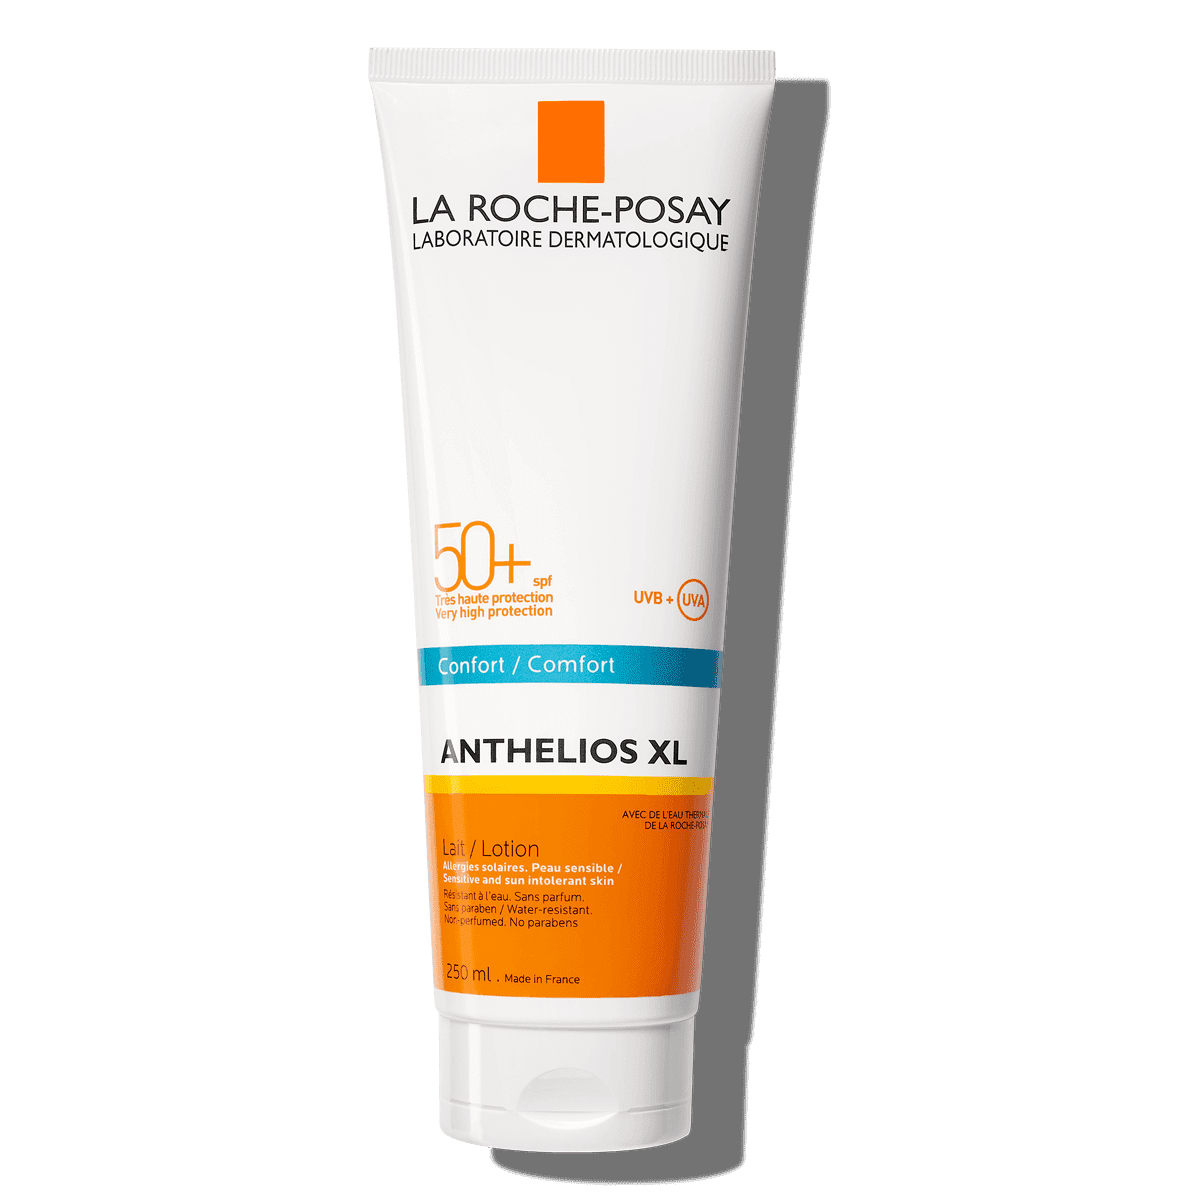 La Roche Posay ProductPage Sun Anthelios XL Smooth Lotion Spf50 250ml